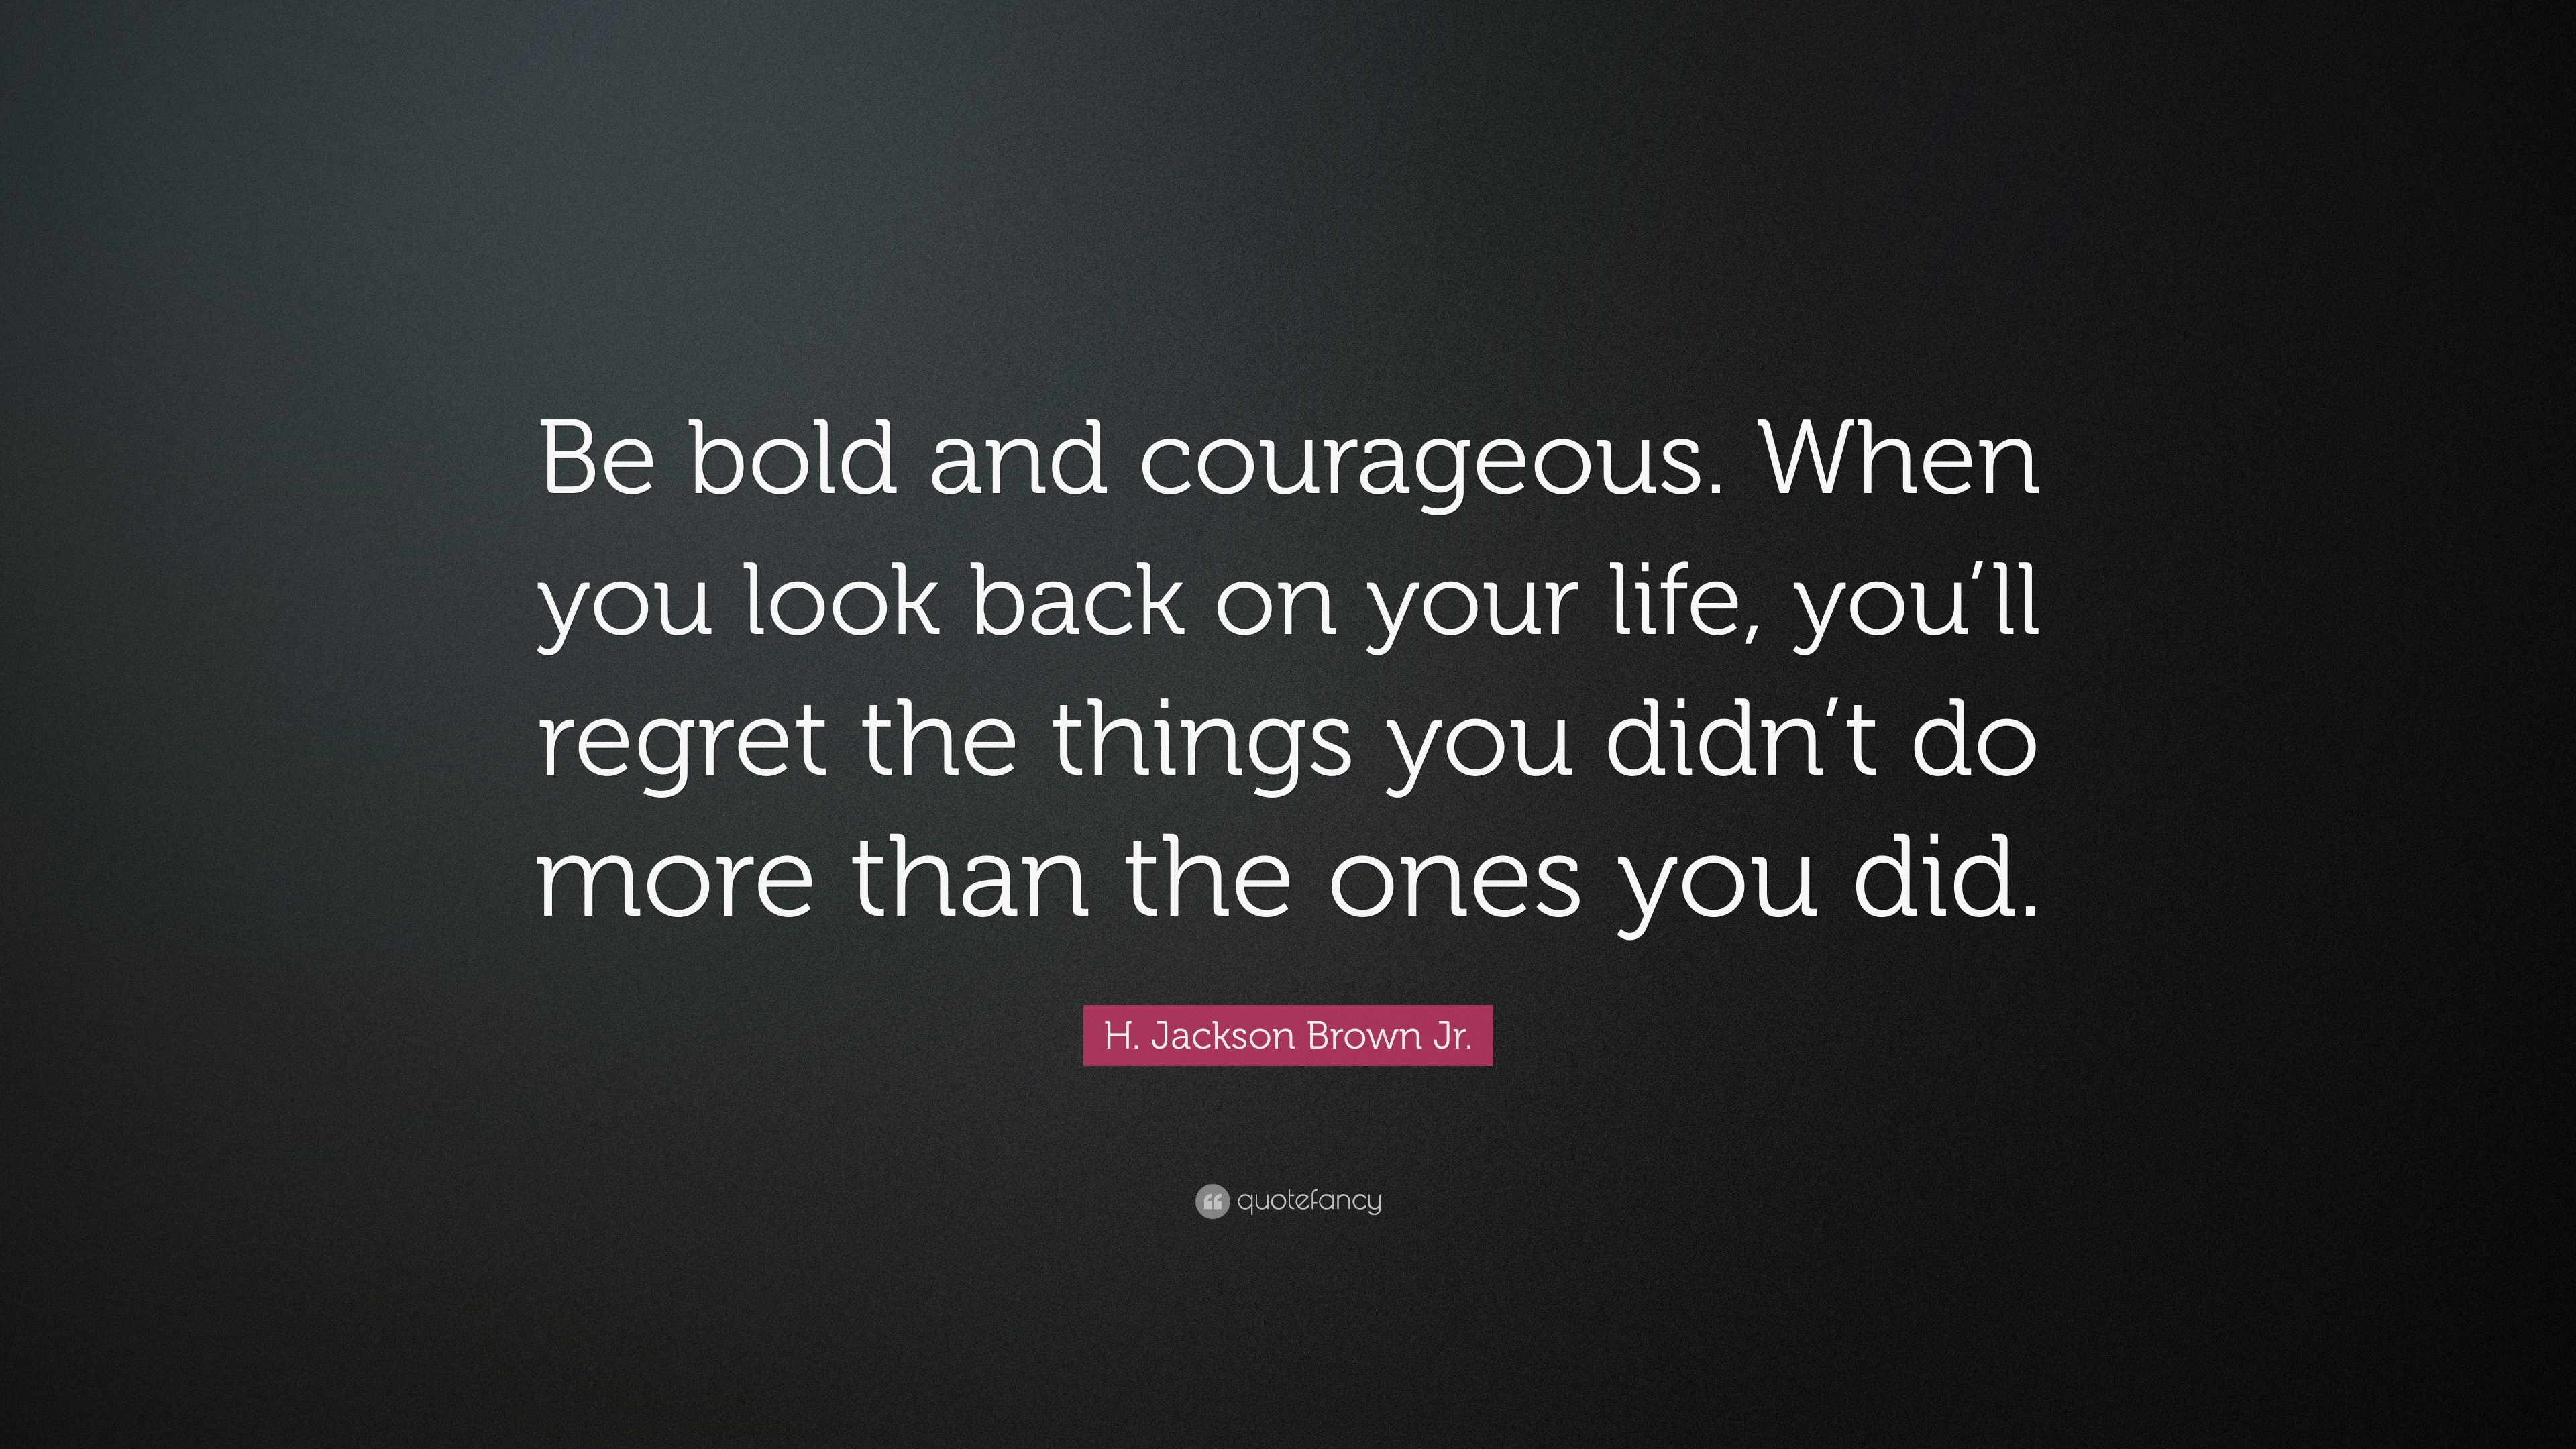 H Jackson Brown Jr Quote Be Bold And Courageous When You Look